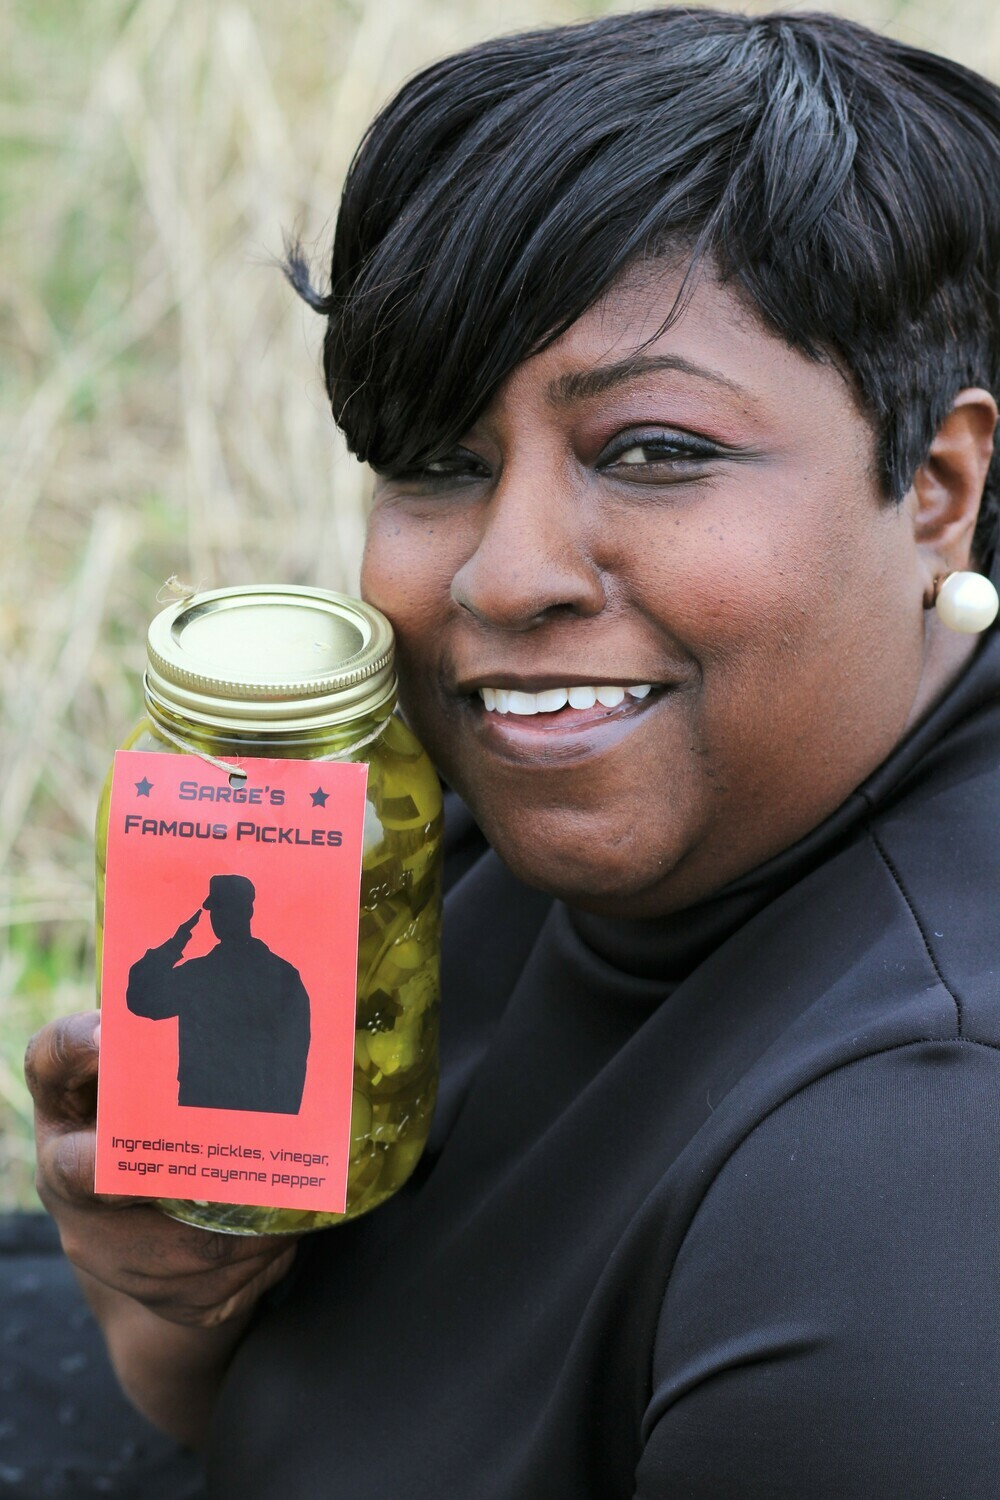 The Original Pickle (sweet with a Lil heat)